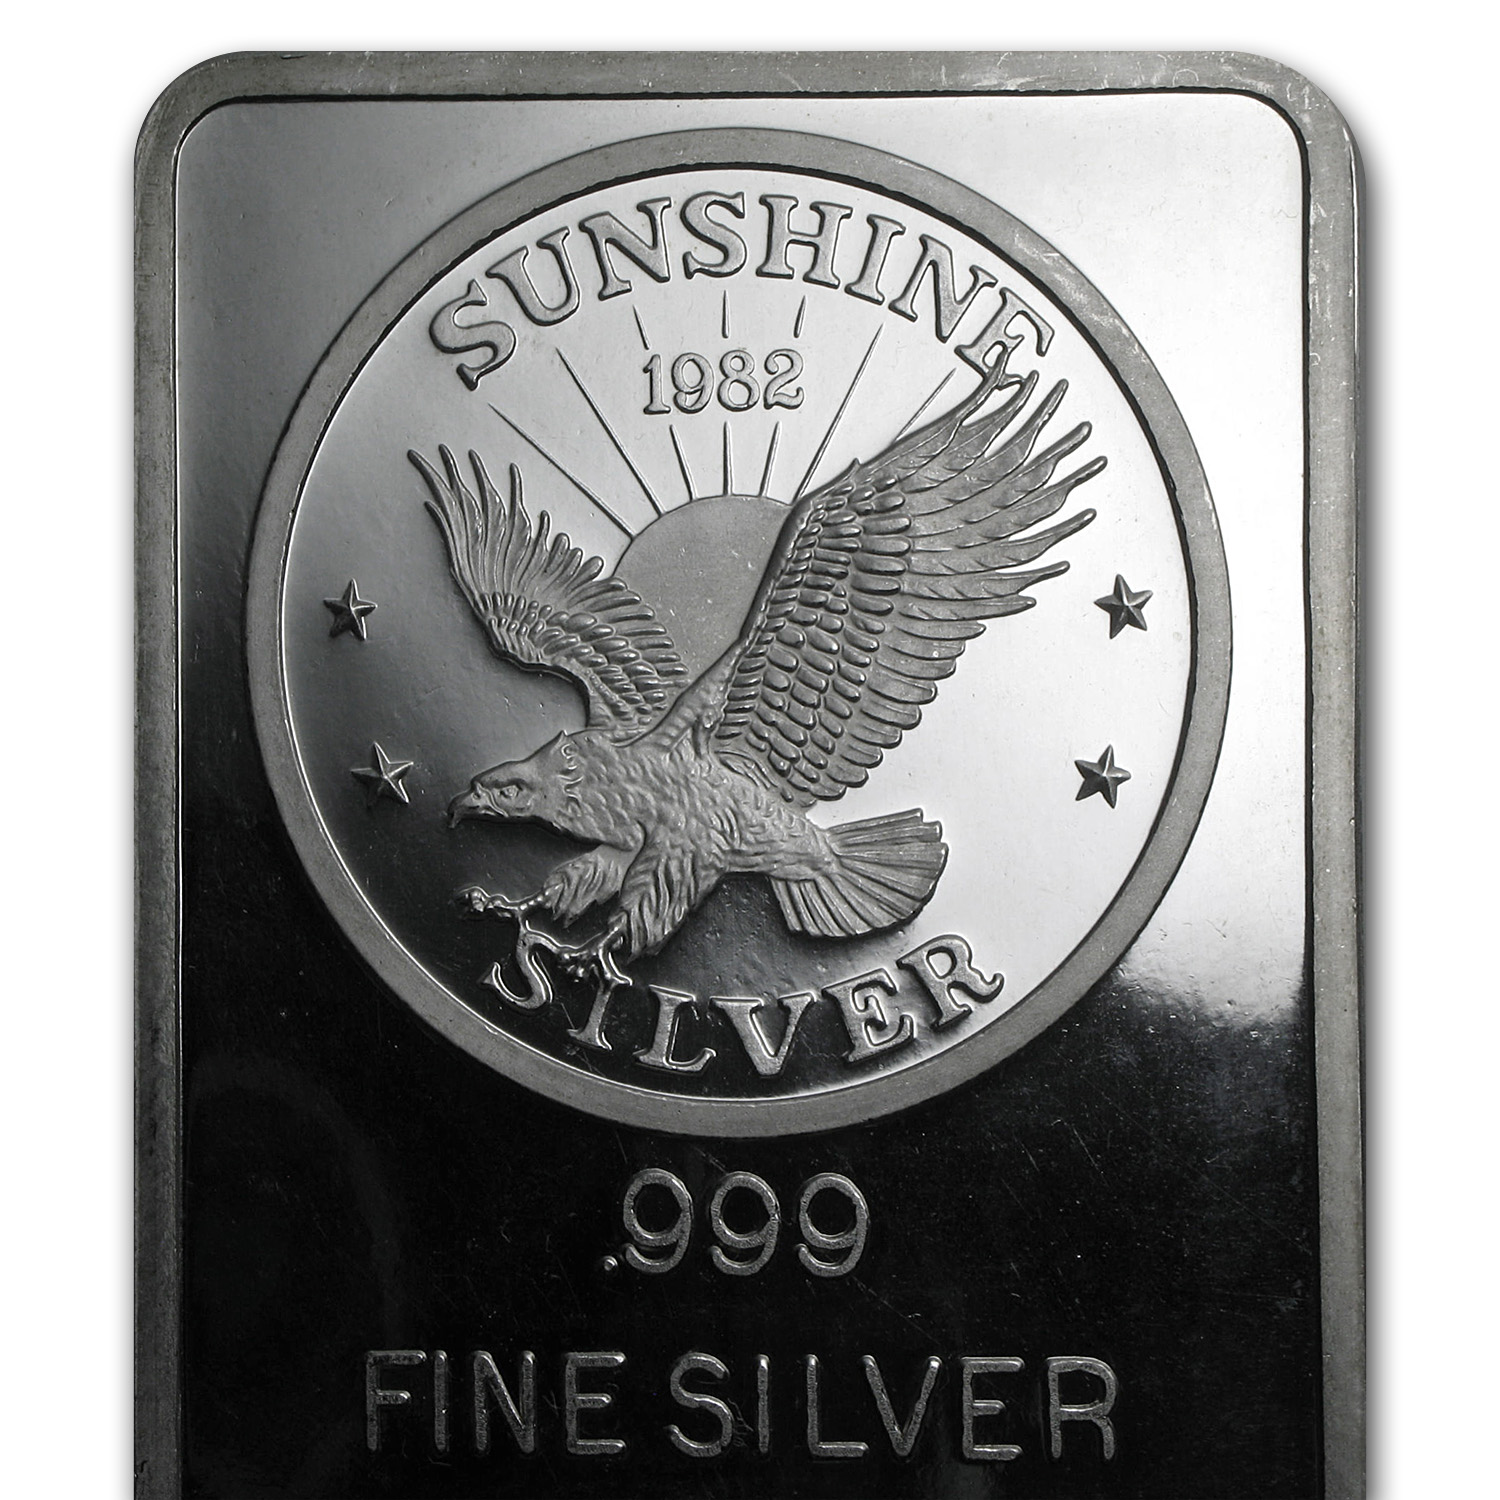 100 oz Silver Bars - Sunshine (1982/Vintage/Pressed)